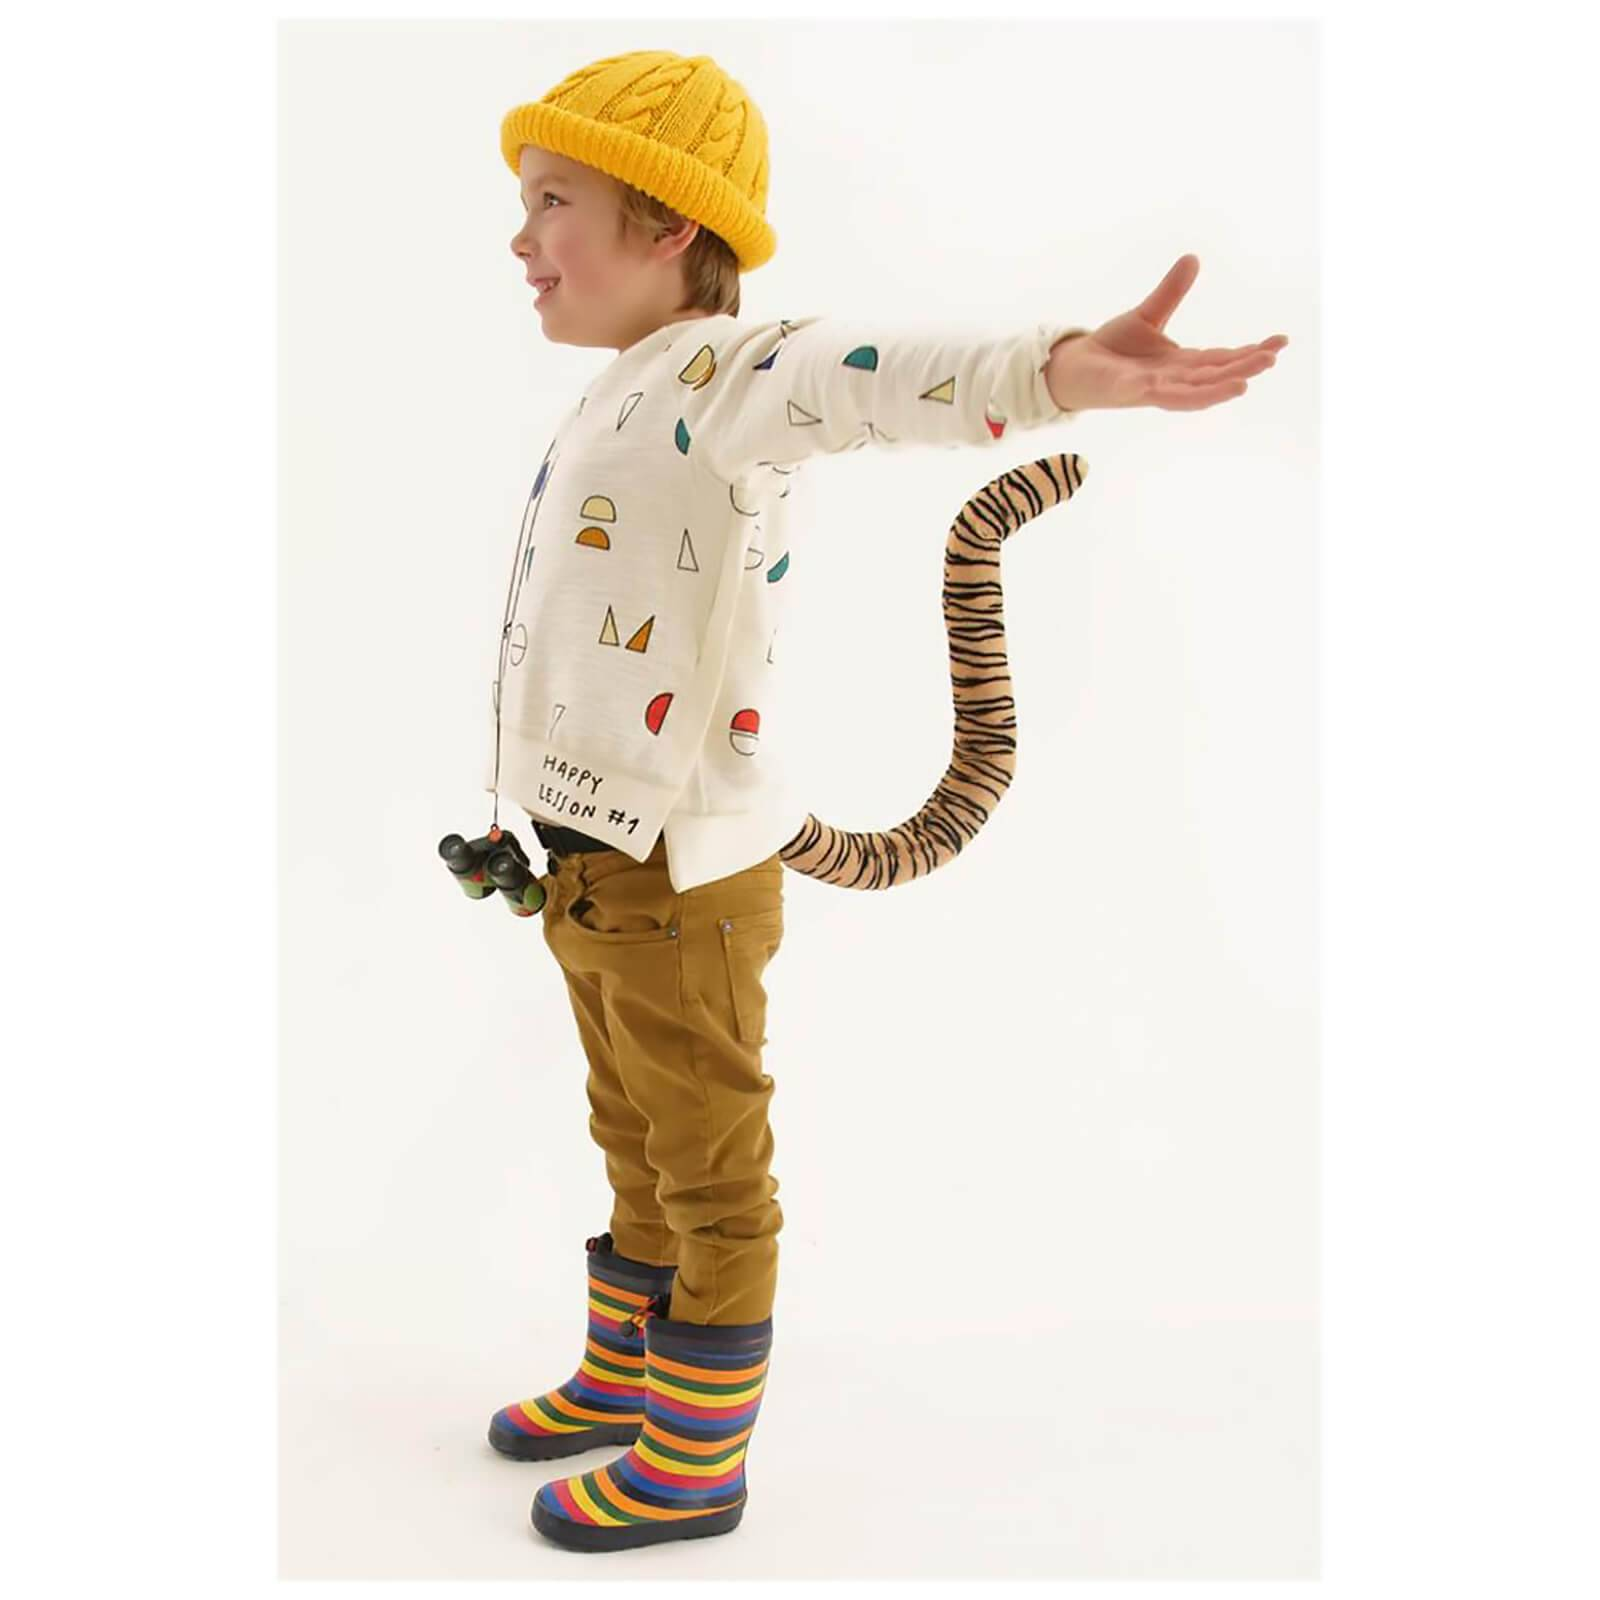 TellTails Wearable Tiger Tail for Kids